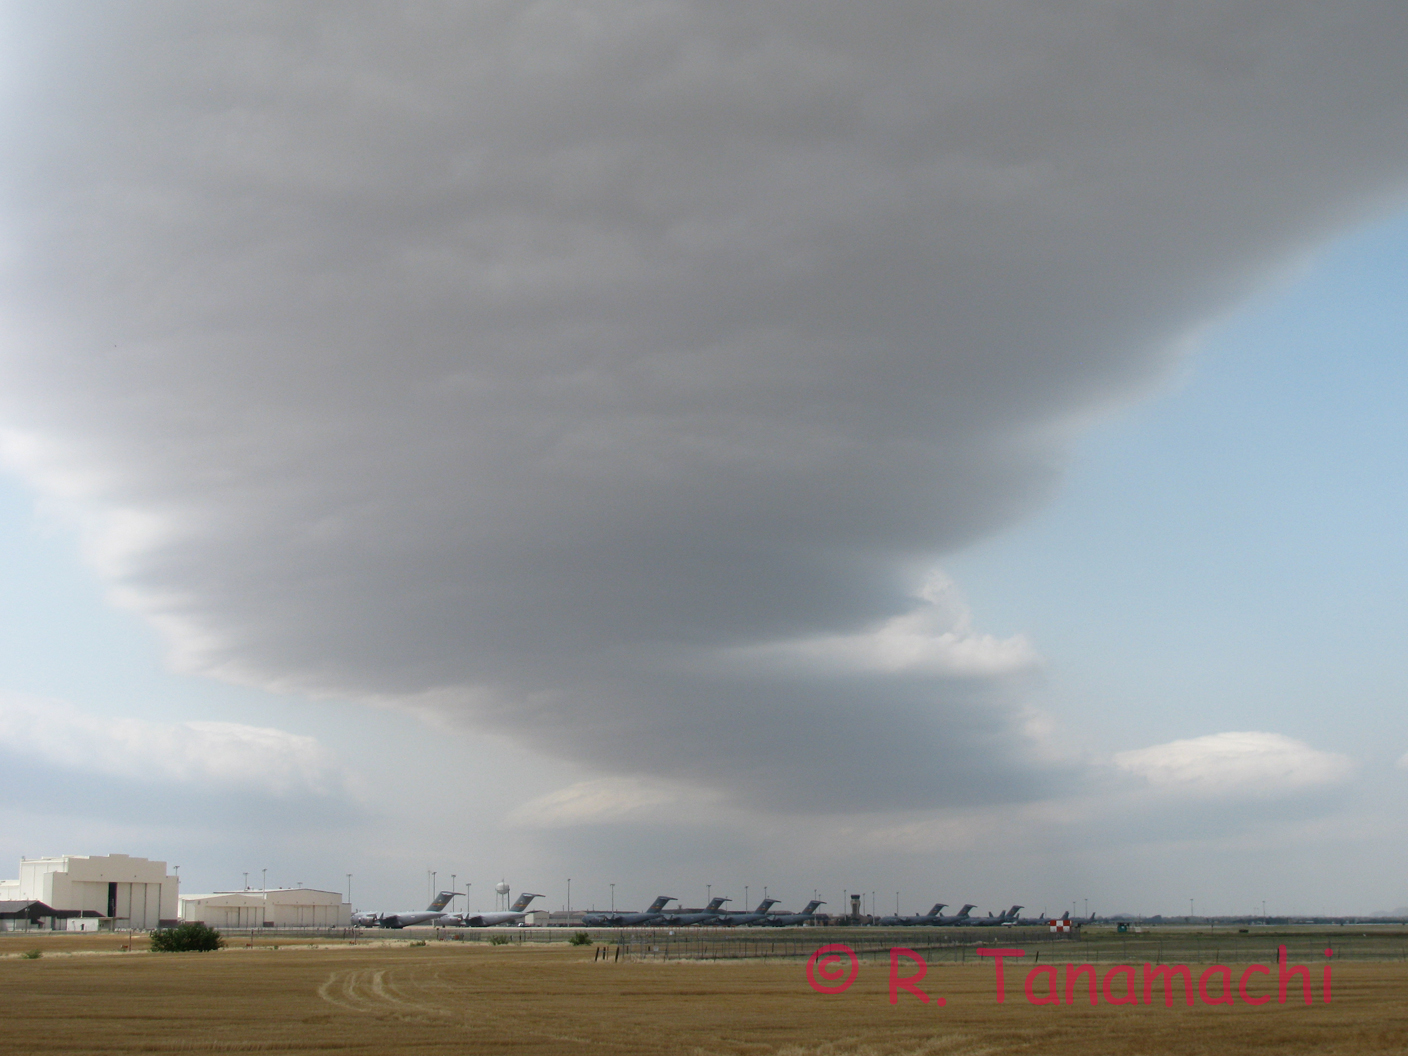 Horizontal convective roll over Elgin Air Force Base near Altus, OK